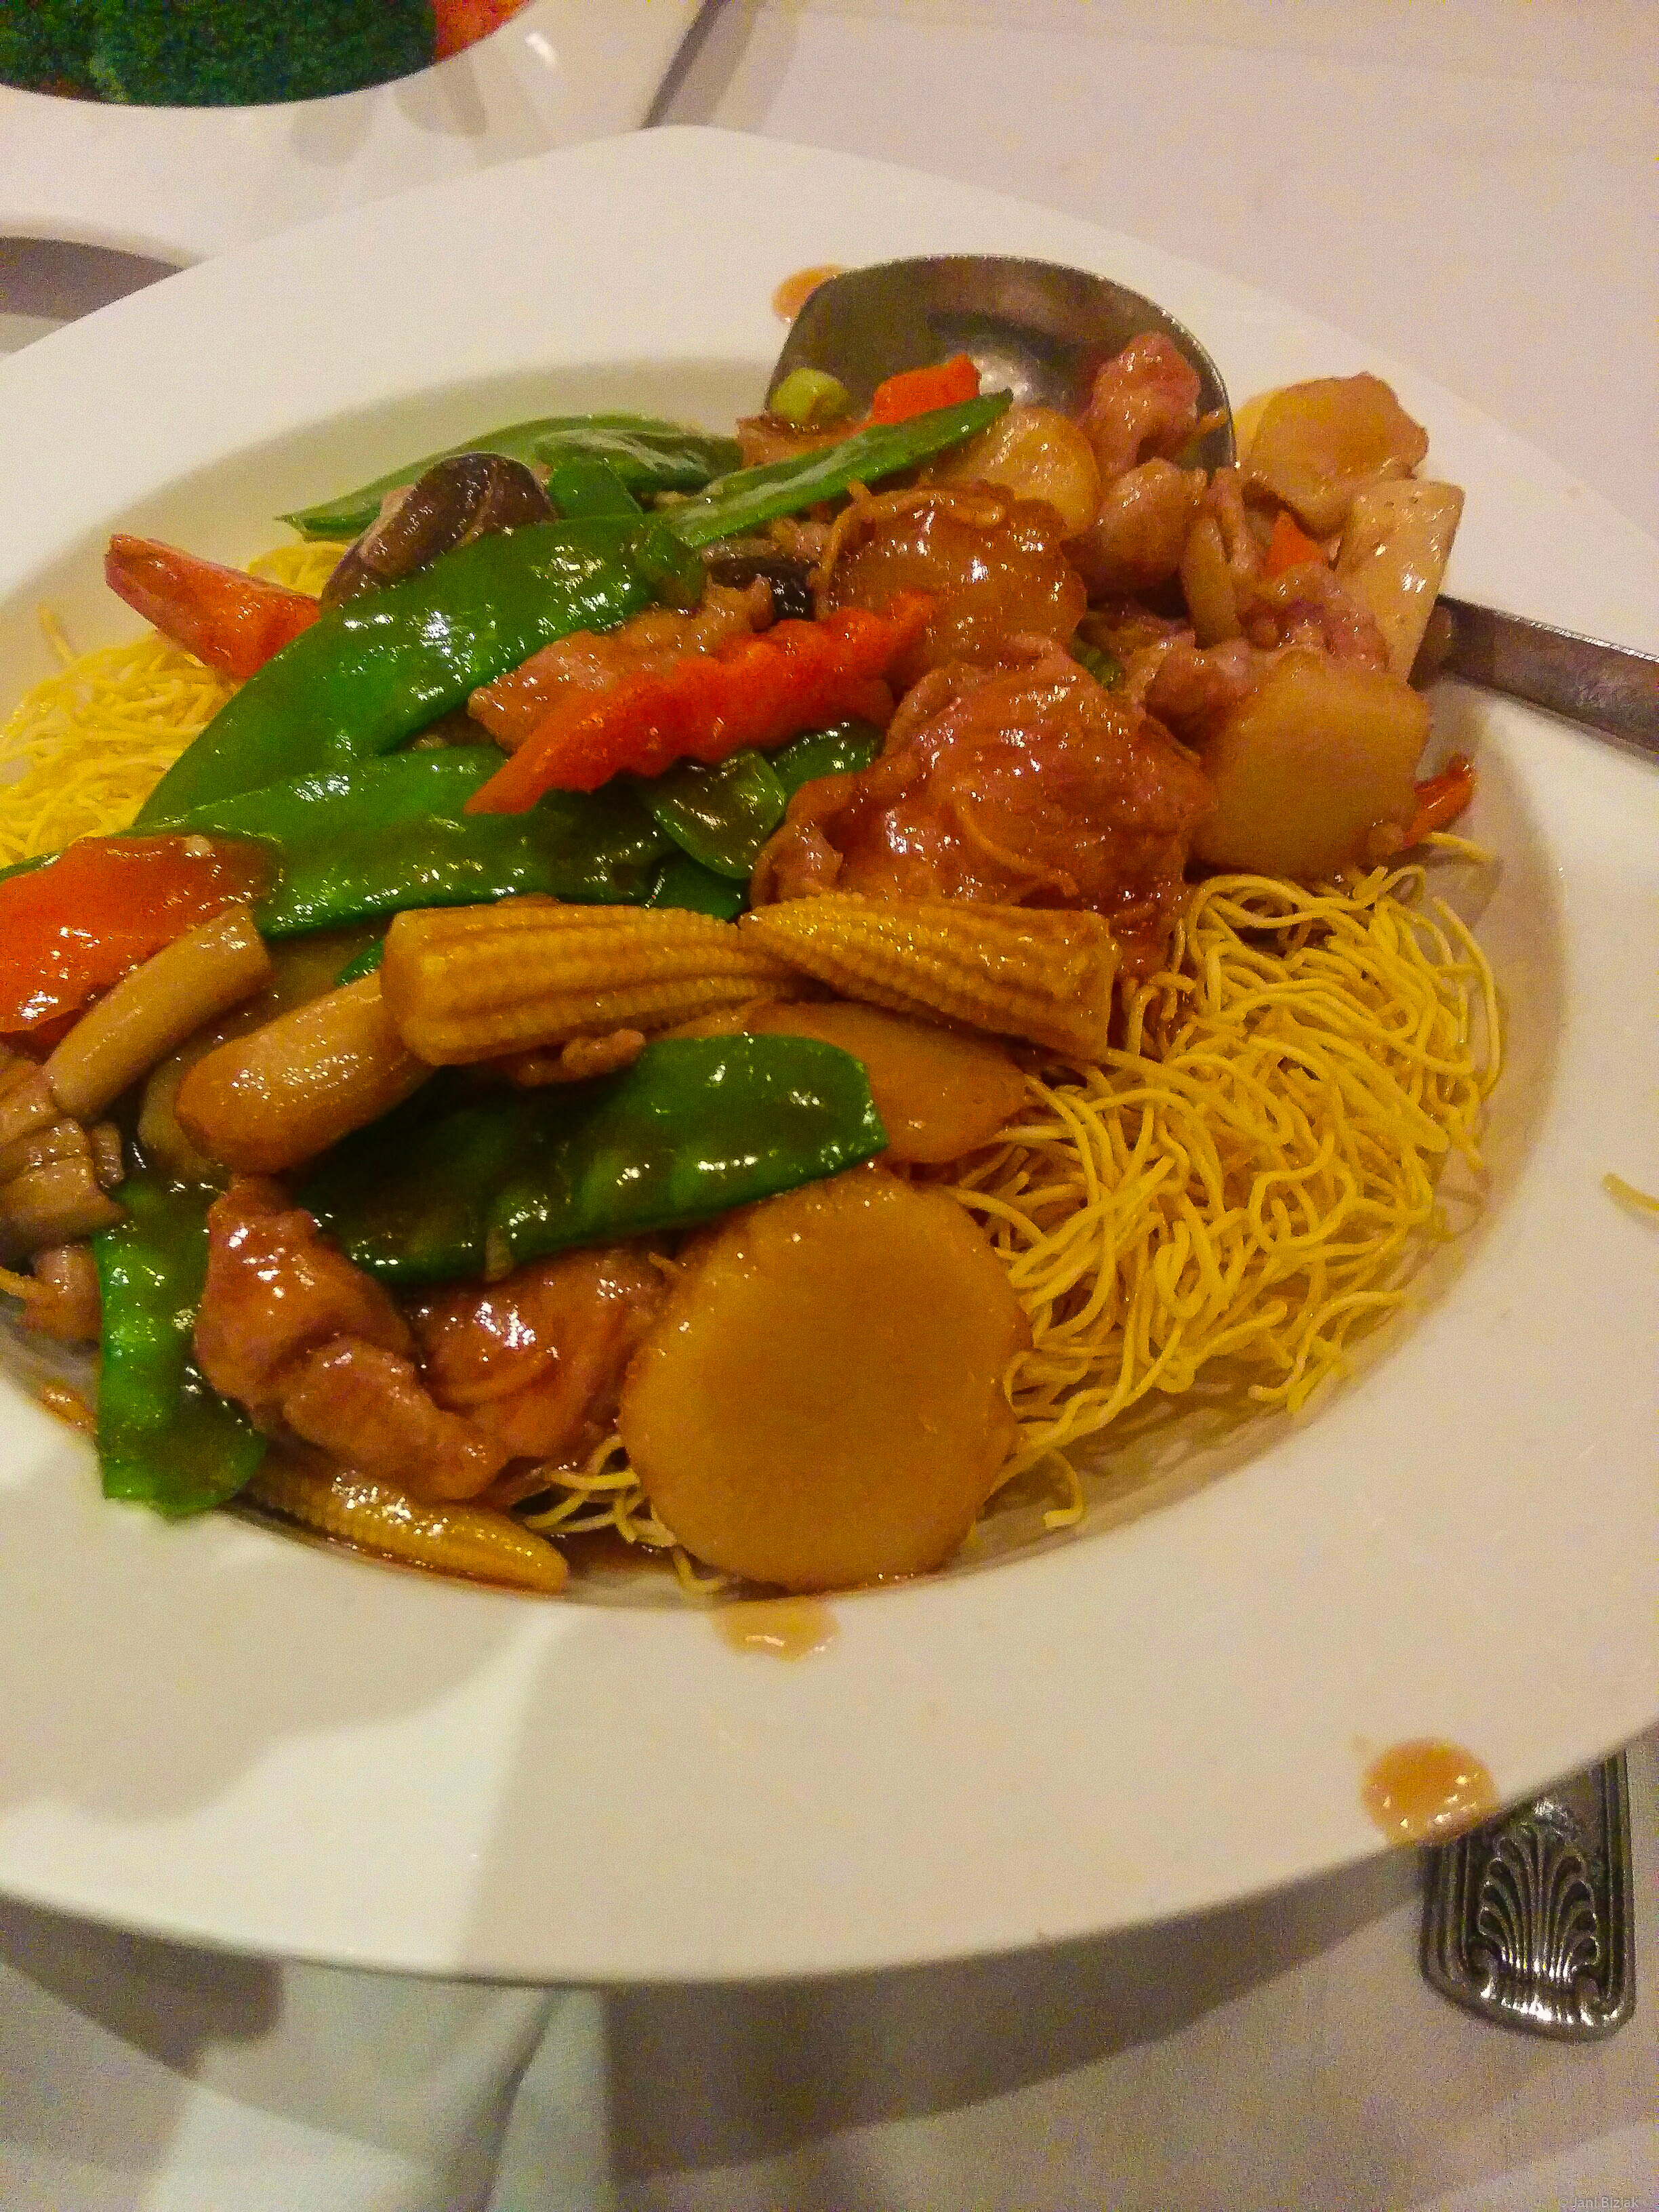 Chinese food with some micro vegetables over noodles.